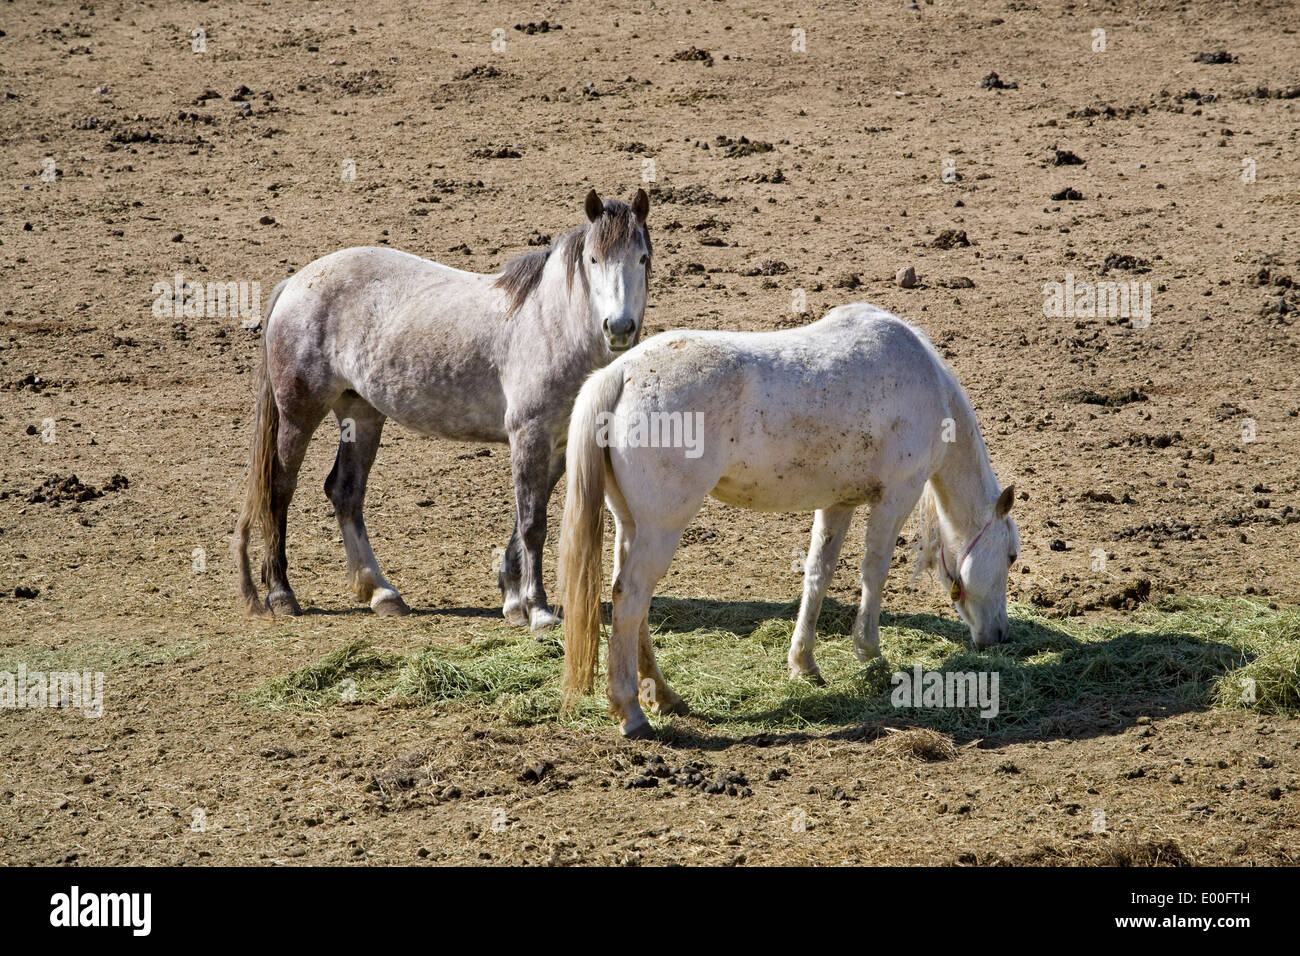 Wild horses in corrals at the BLM Wild Horse Center in Burns, Oregon - Stock Image